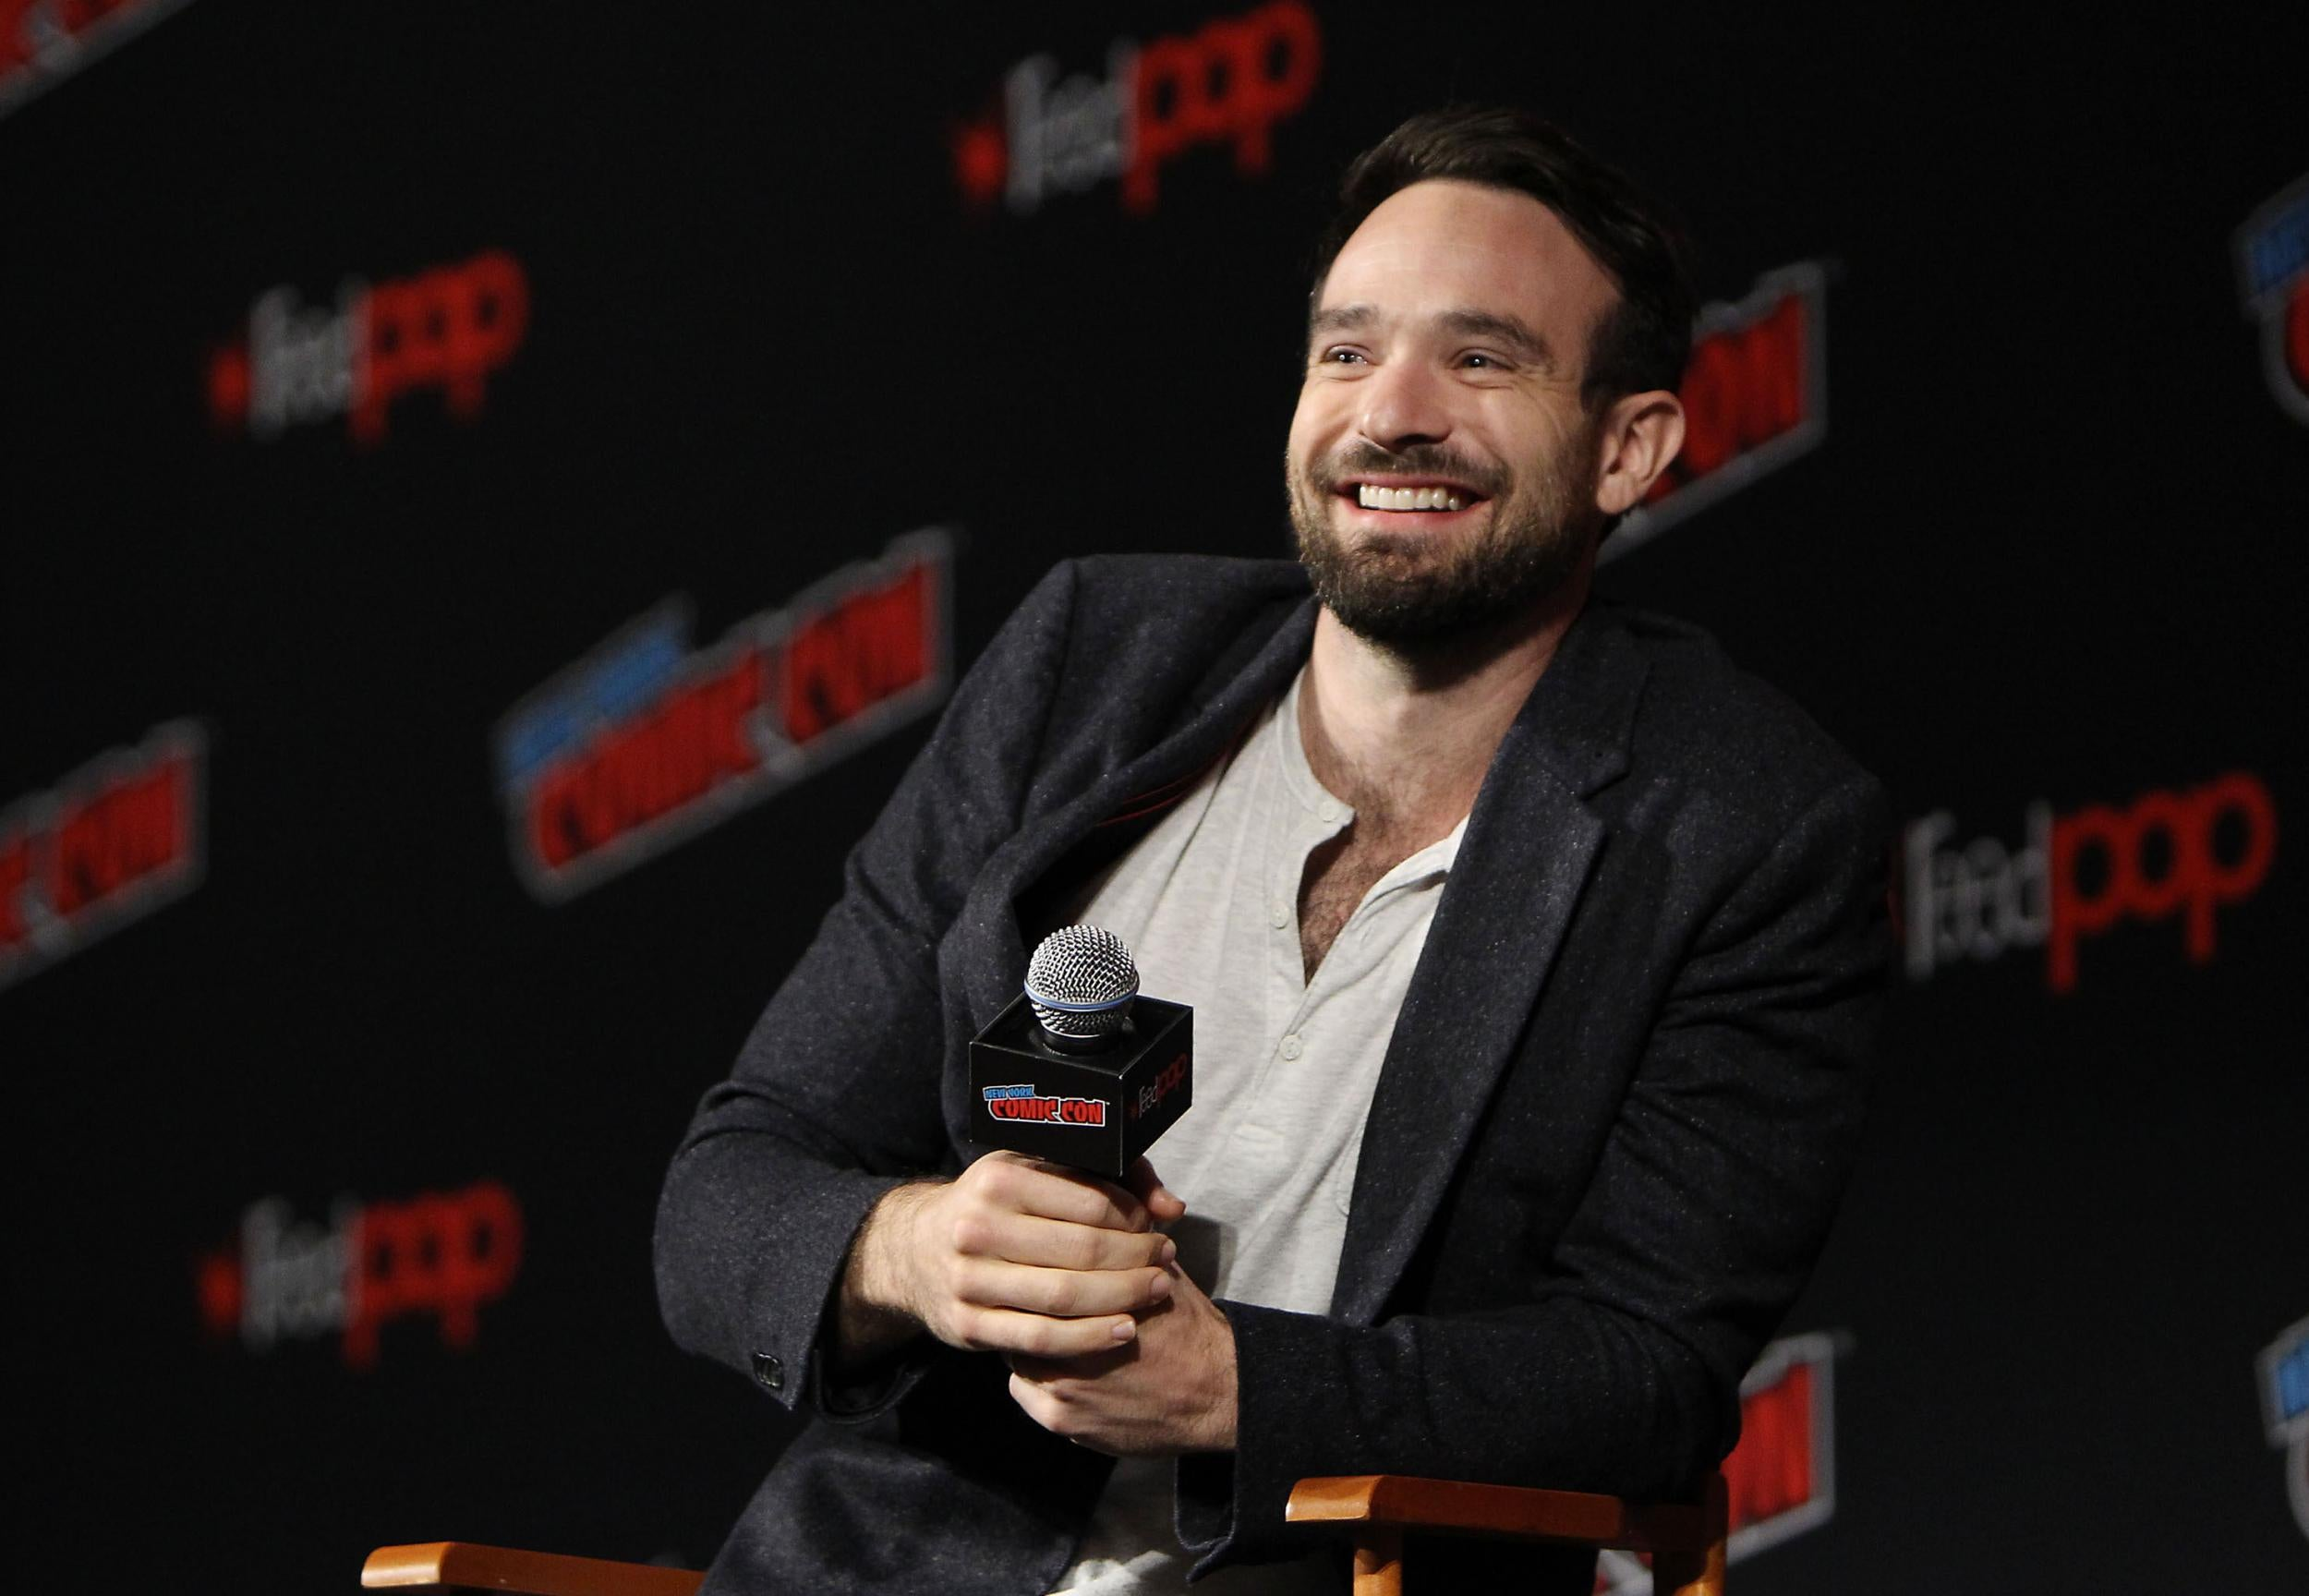 7392e7738 Charlie Cox interview: 'Maybe I'm not good enough to play Bond' | The  Independent